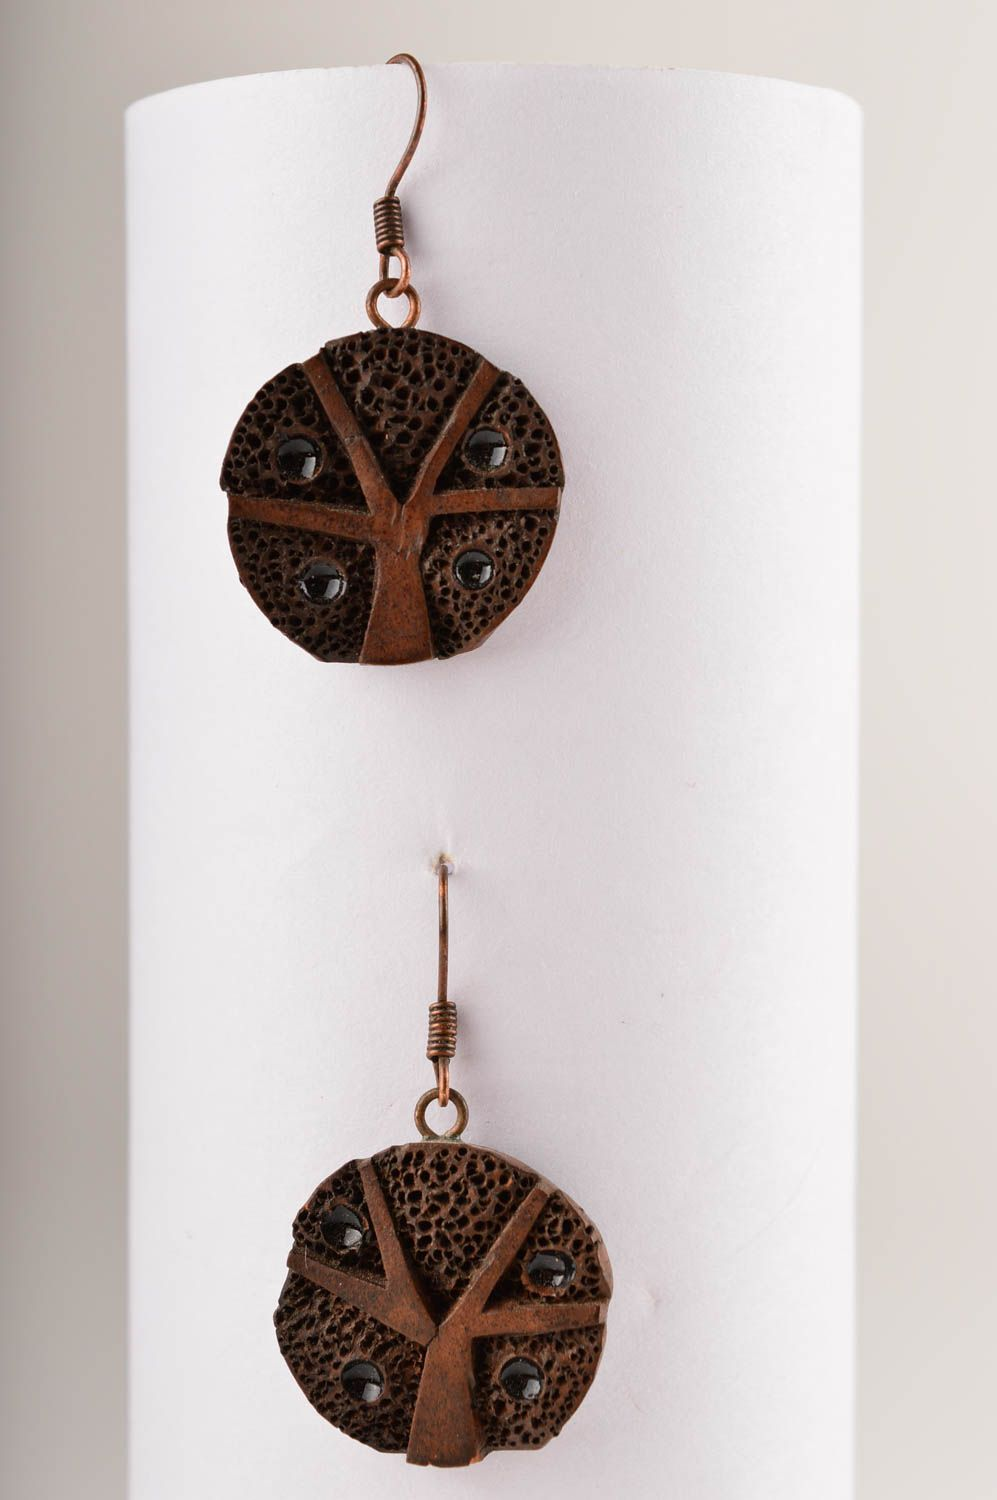 Ceramic jewelry handmade earrings gifts for women fashion accessories photo 1